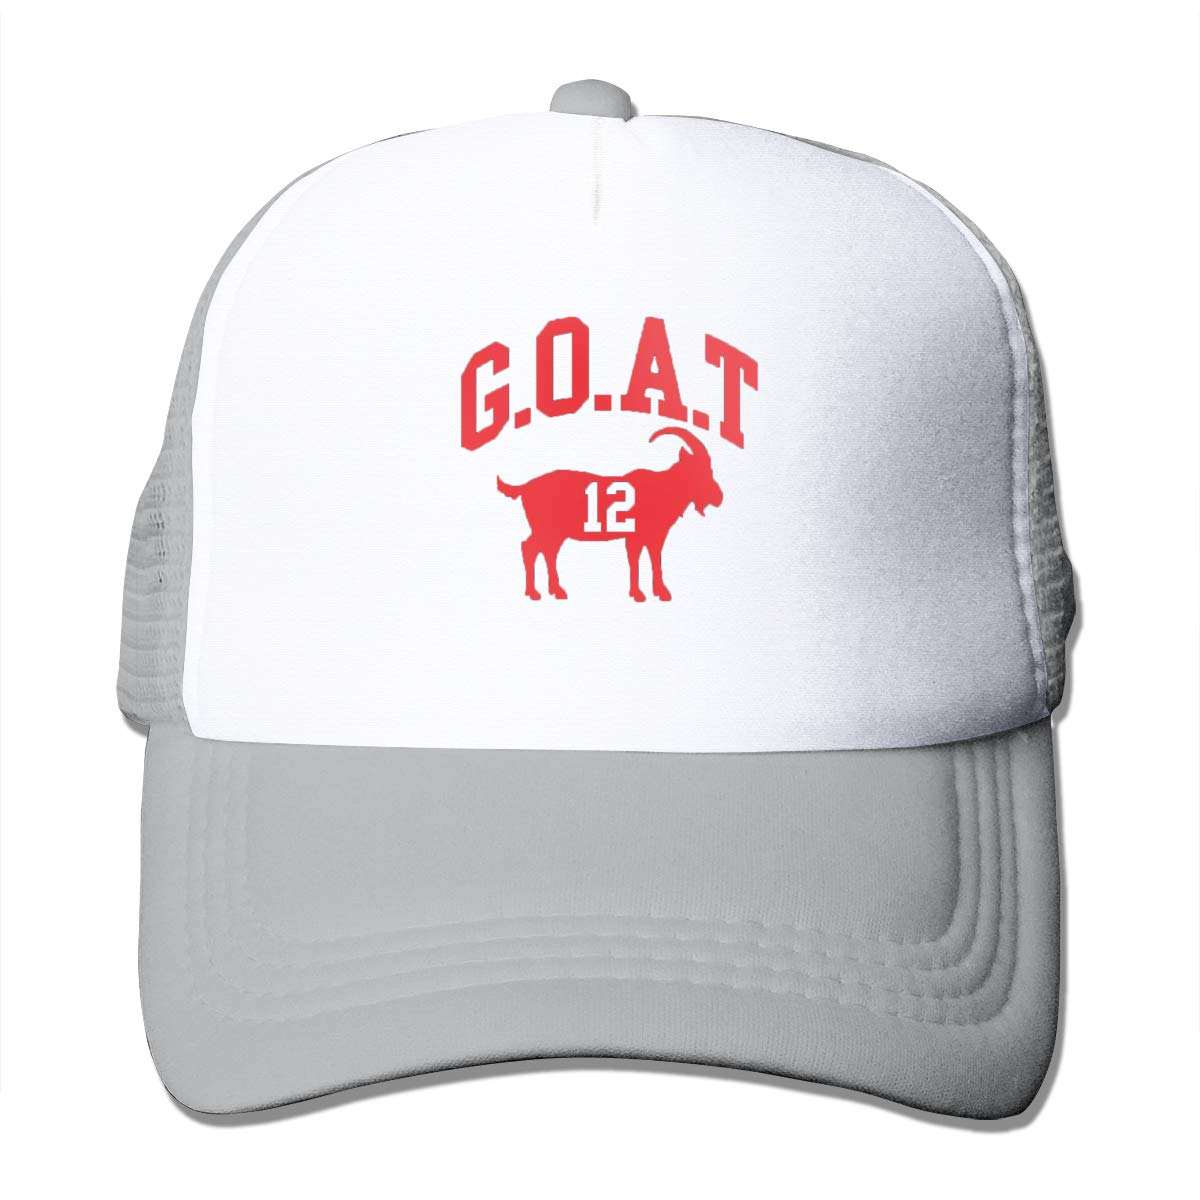 Mens Adjustable Fashion Mesh Hat Football Goat Greatest Of 12 Baseball Caps One Size Fits Most